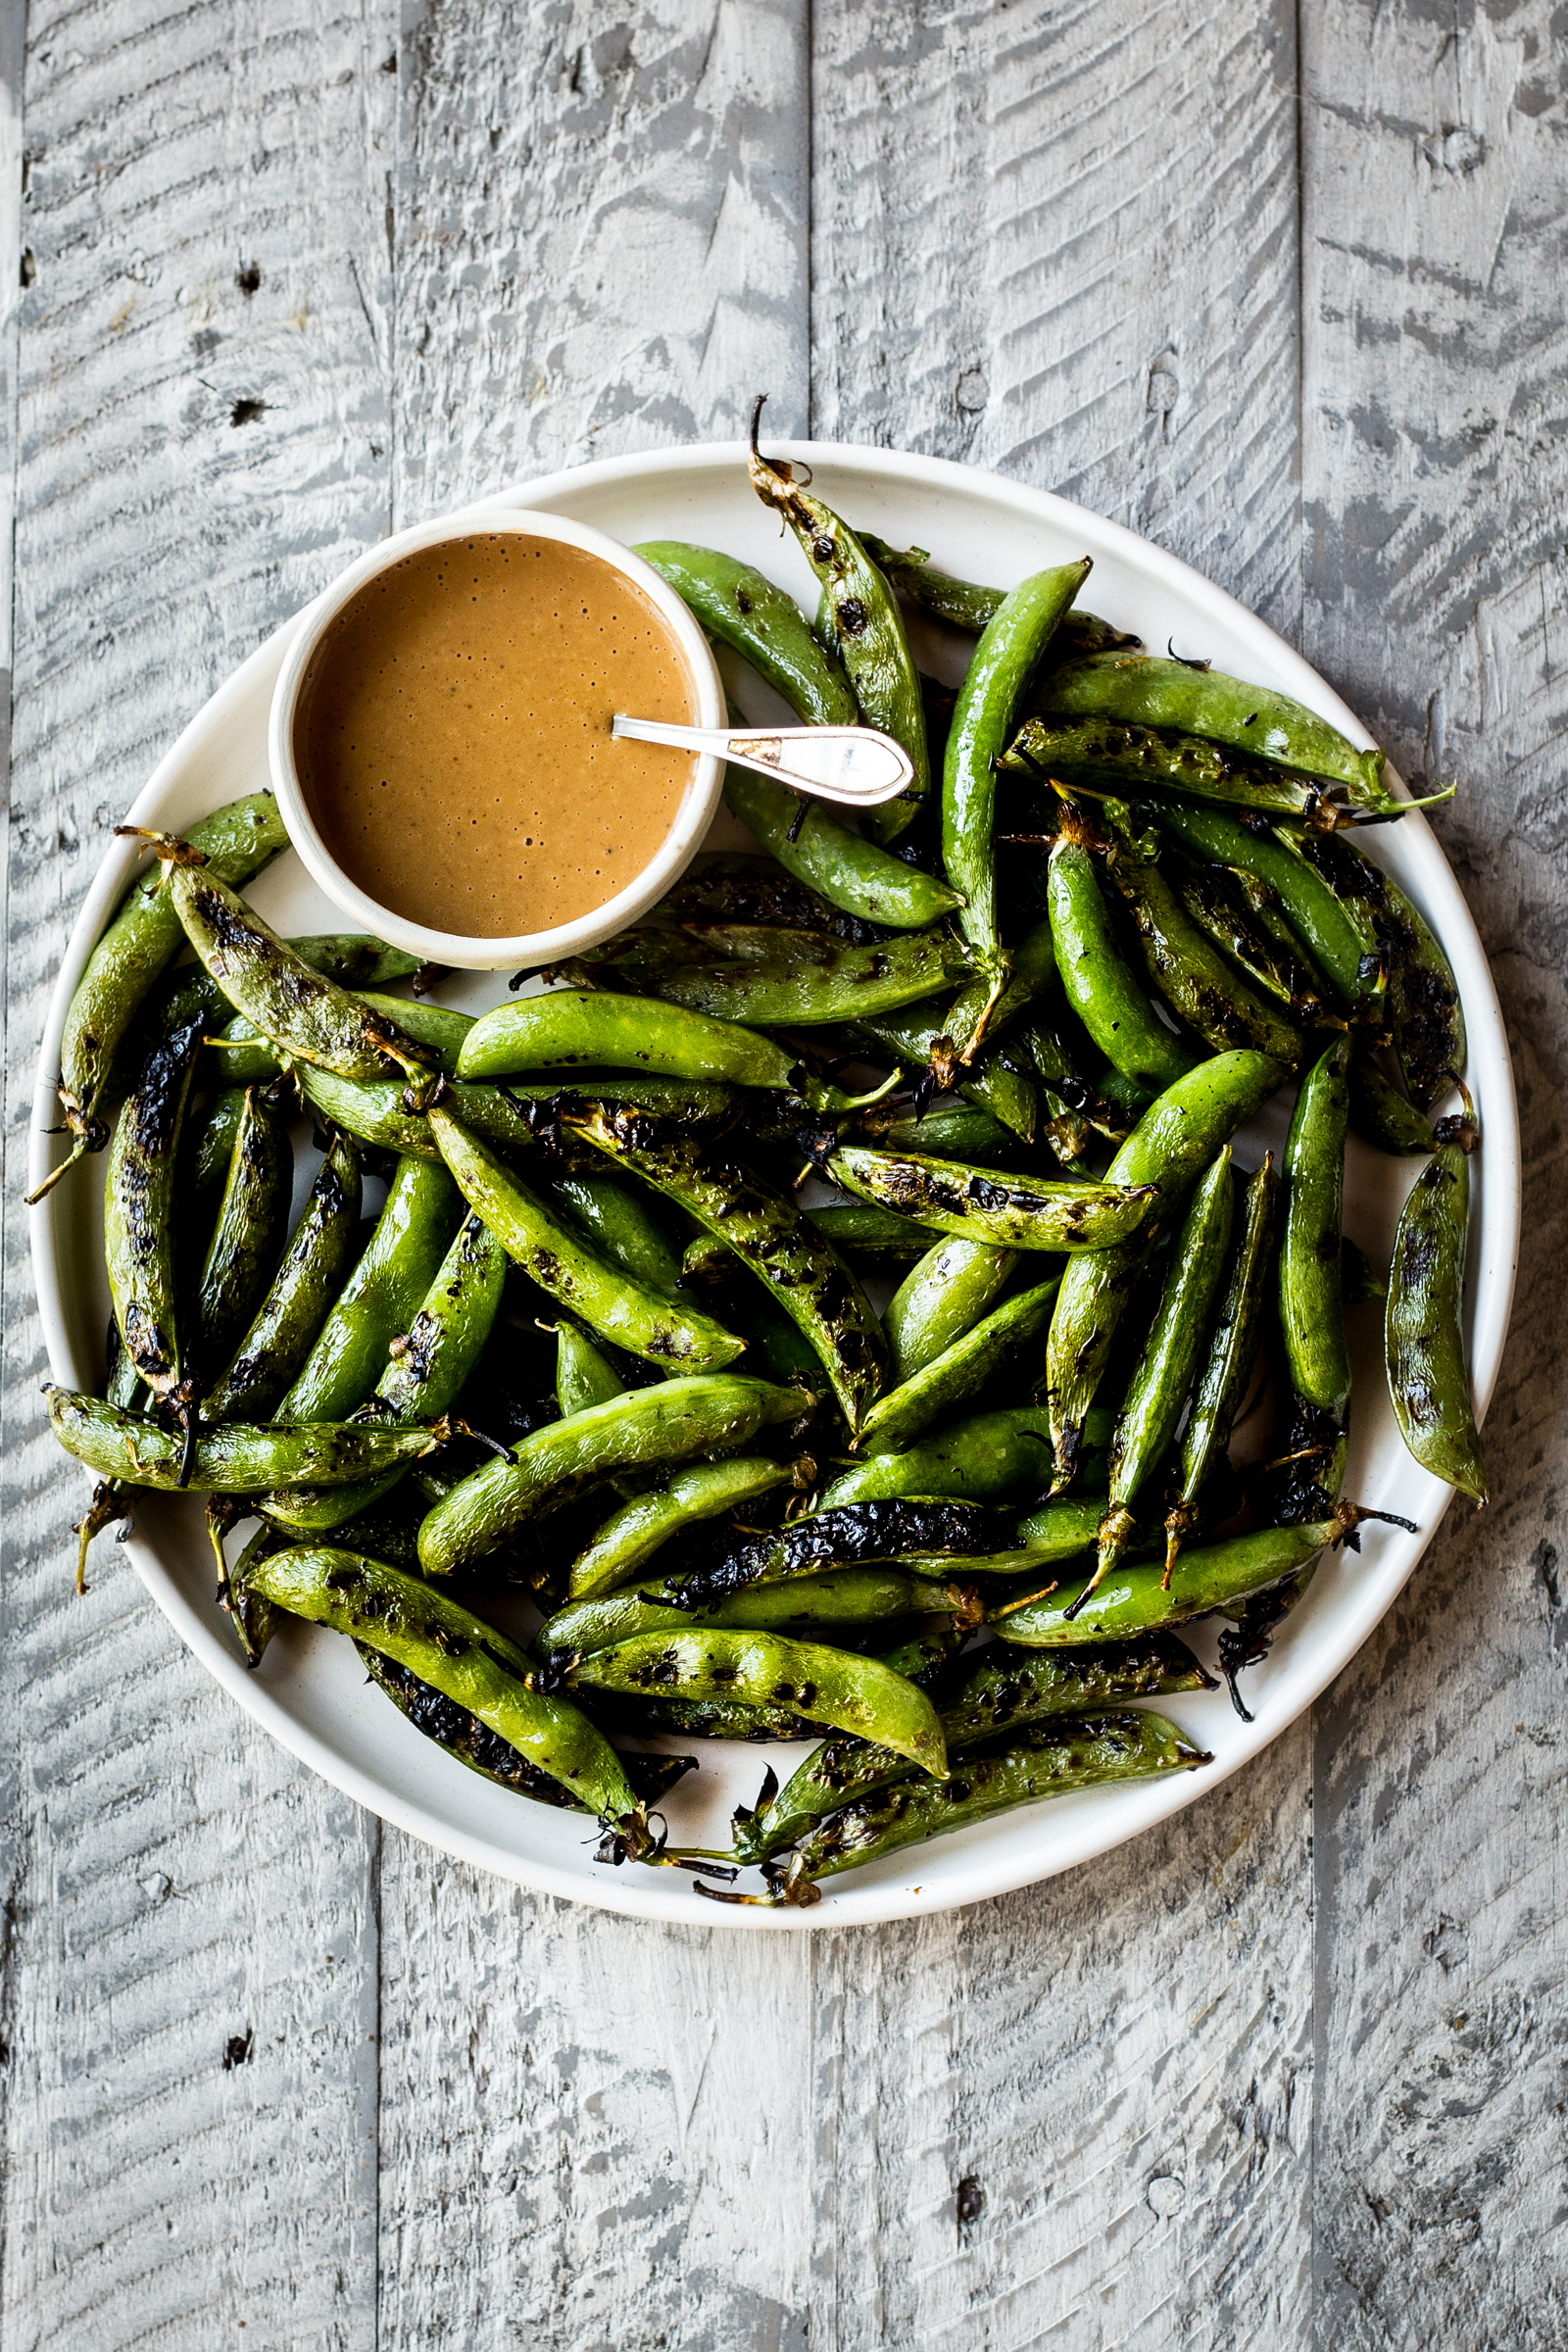 Grilled Sugar Snap Peas with Spicy Peanut Sauce